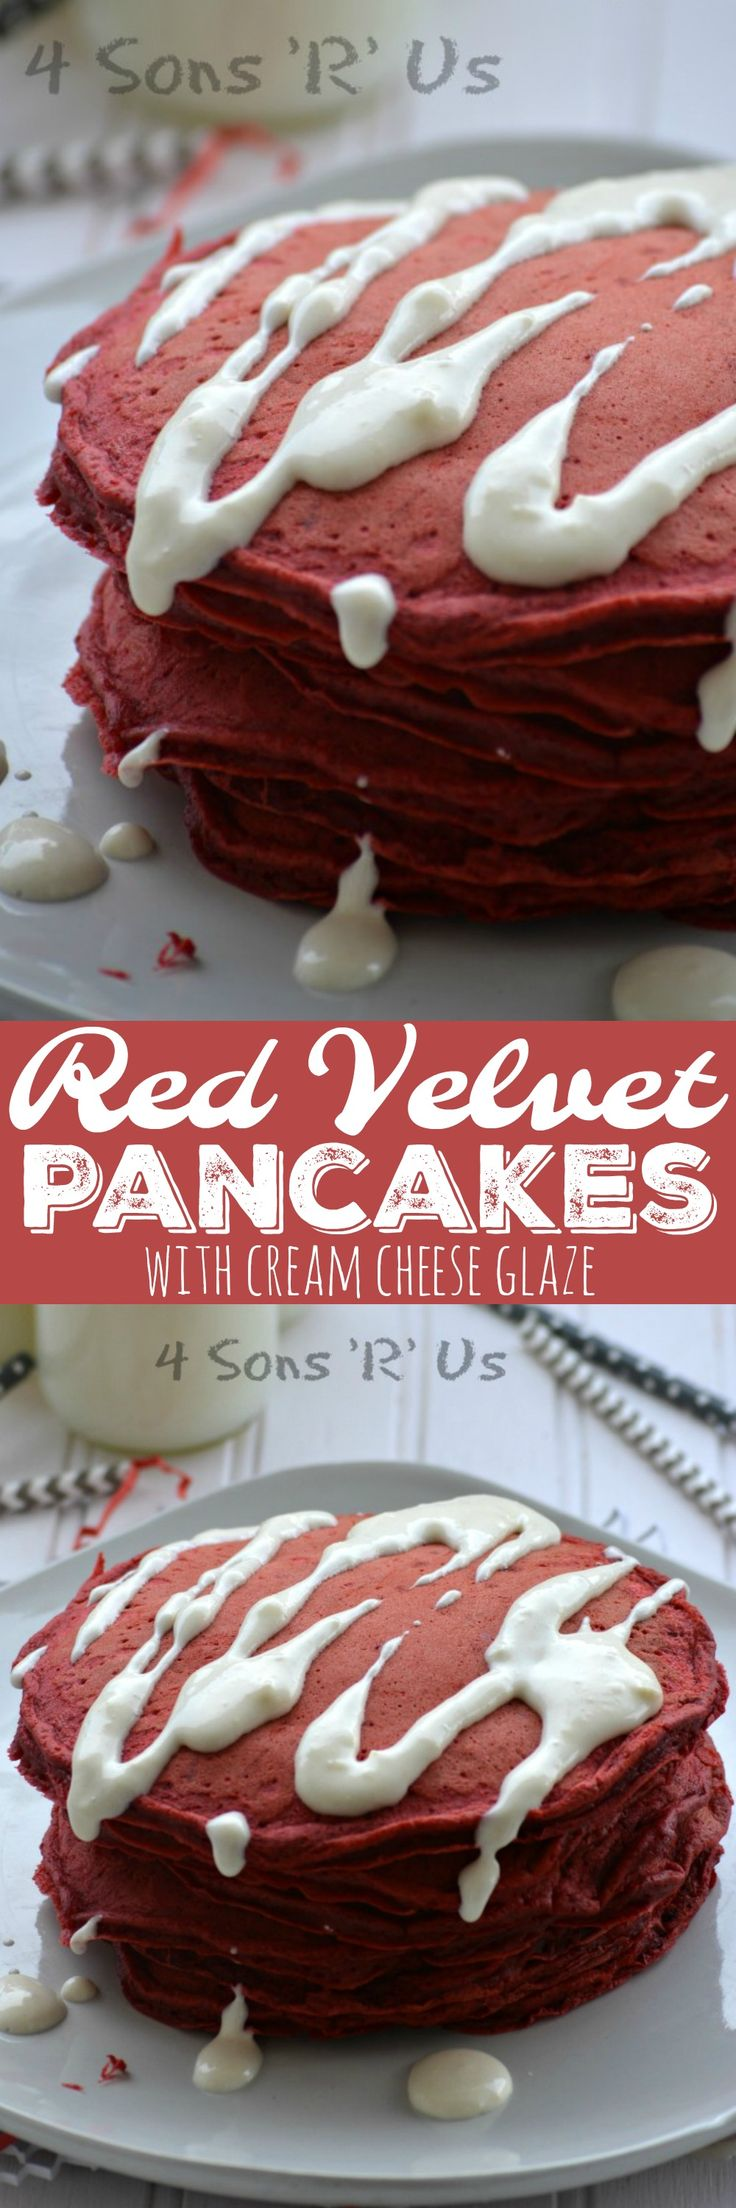 How To Make Red Velvet Pancakes Out Of Cake Mix